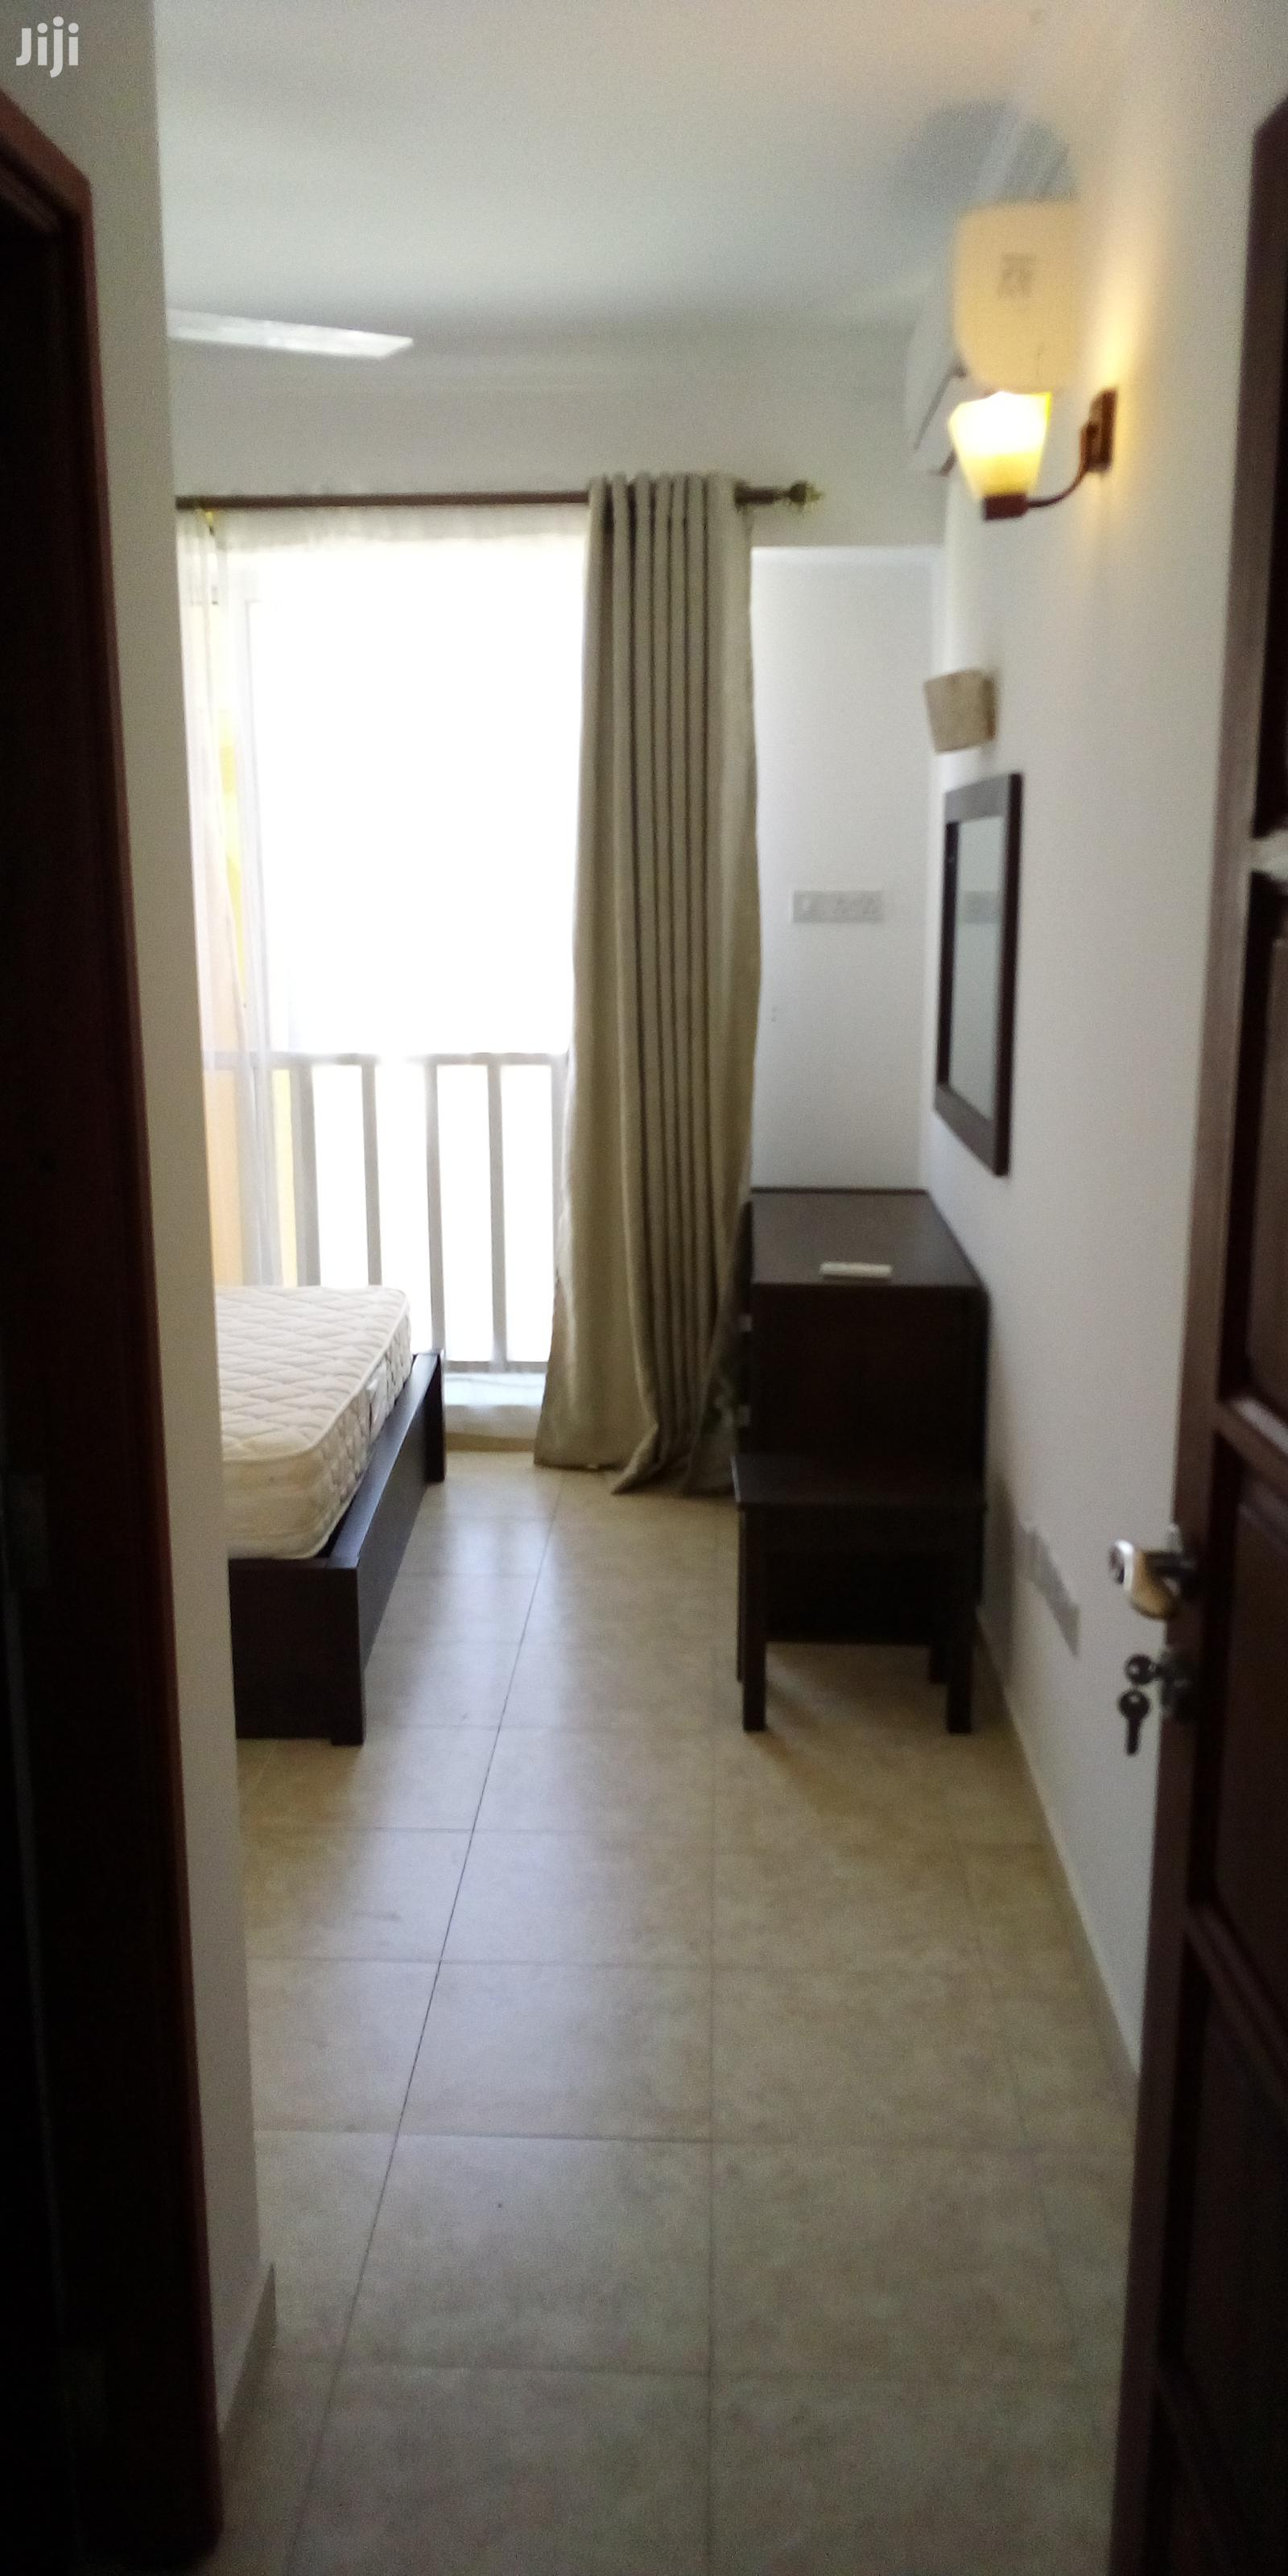 Specious 2 Bedrooms Fully Furnished at Masaki | Houses & Apartments For Rent for sale in Ilala, Dar es Salaam, Tanzania